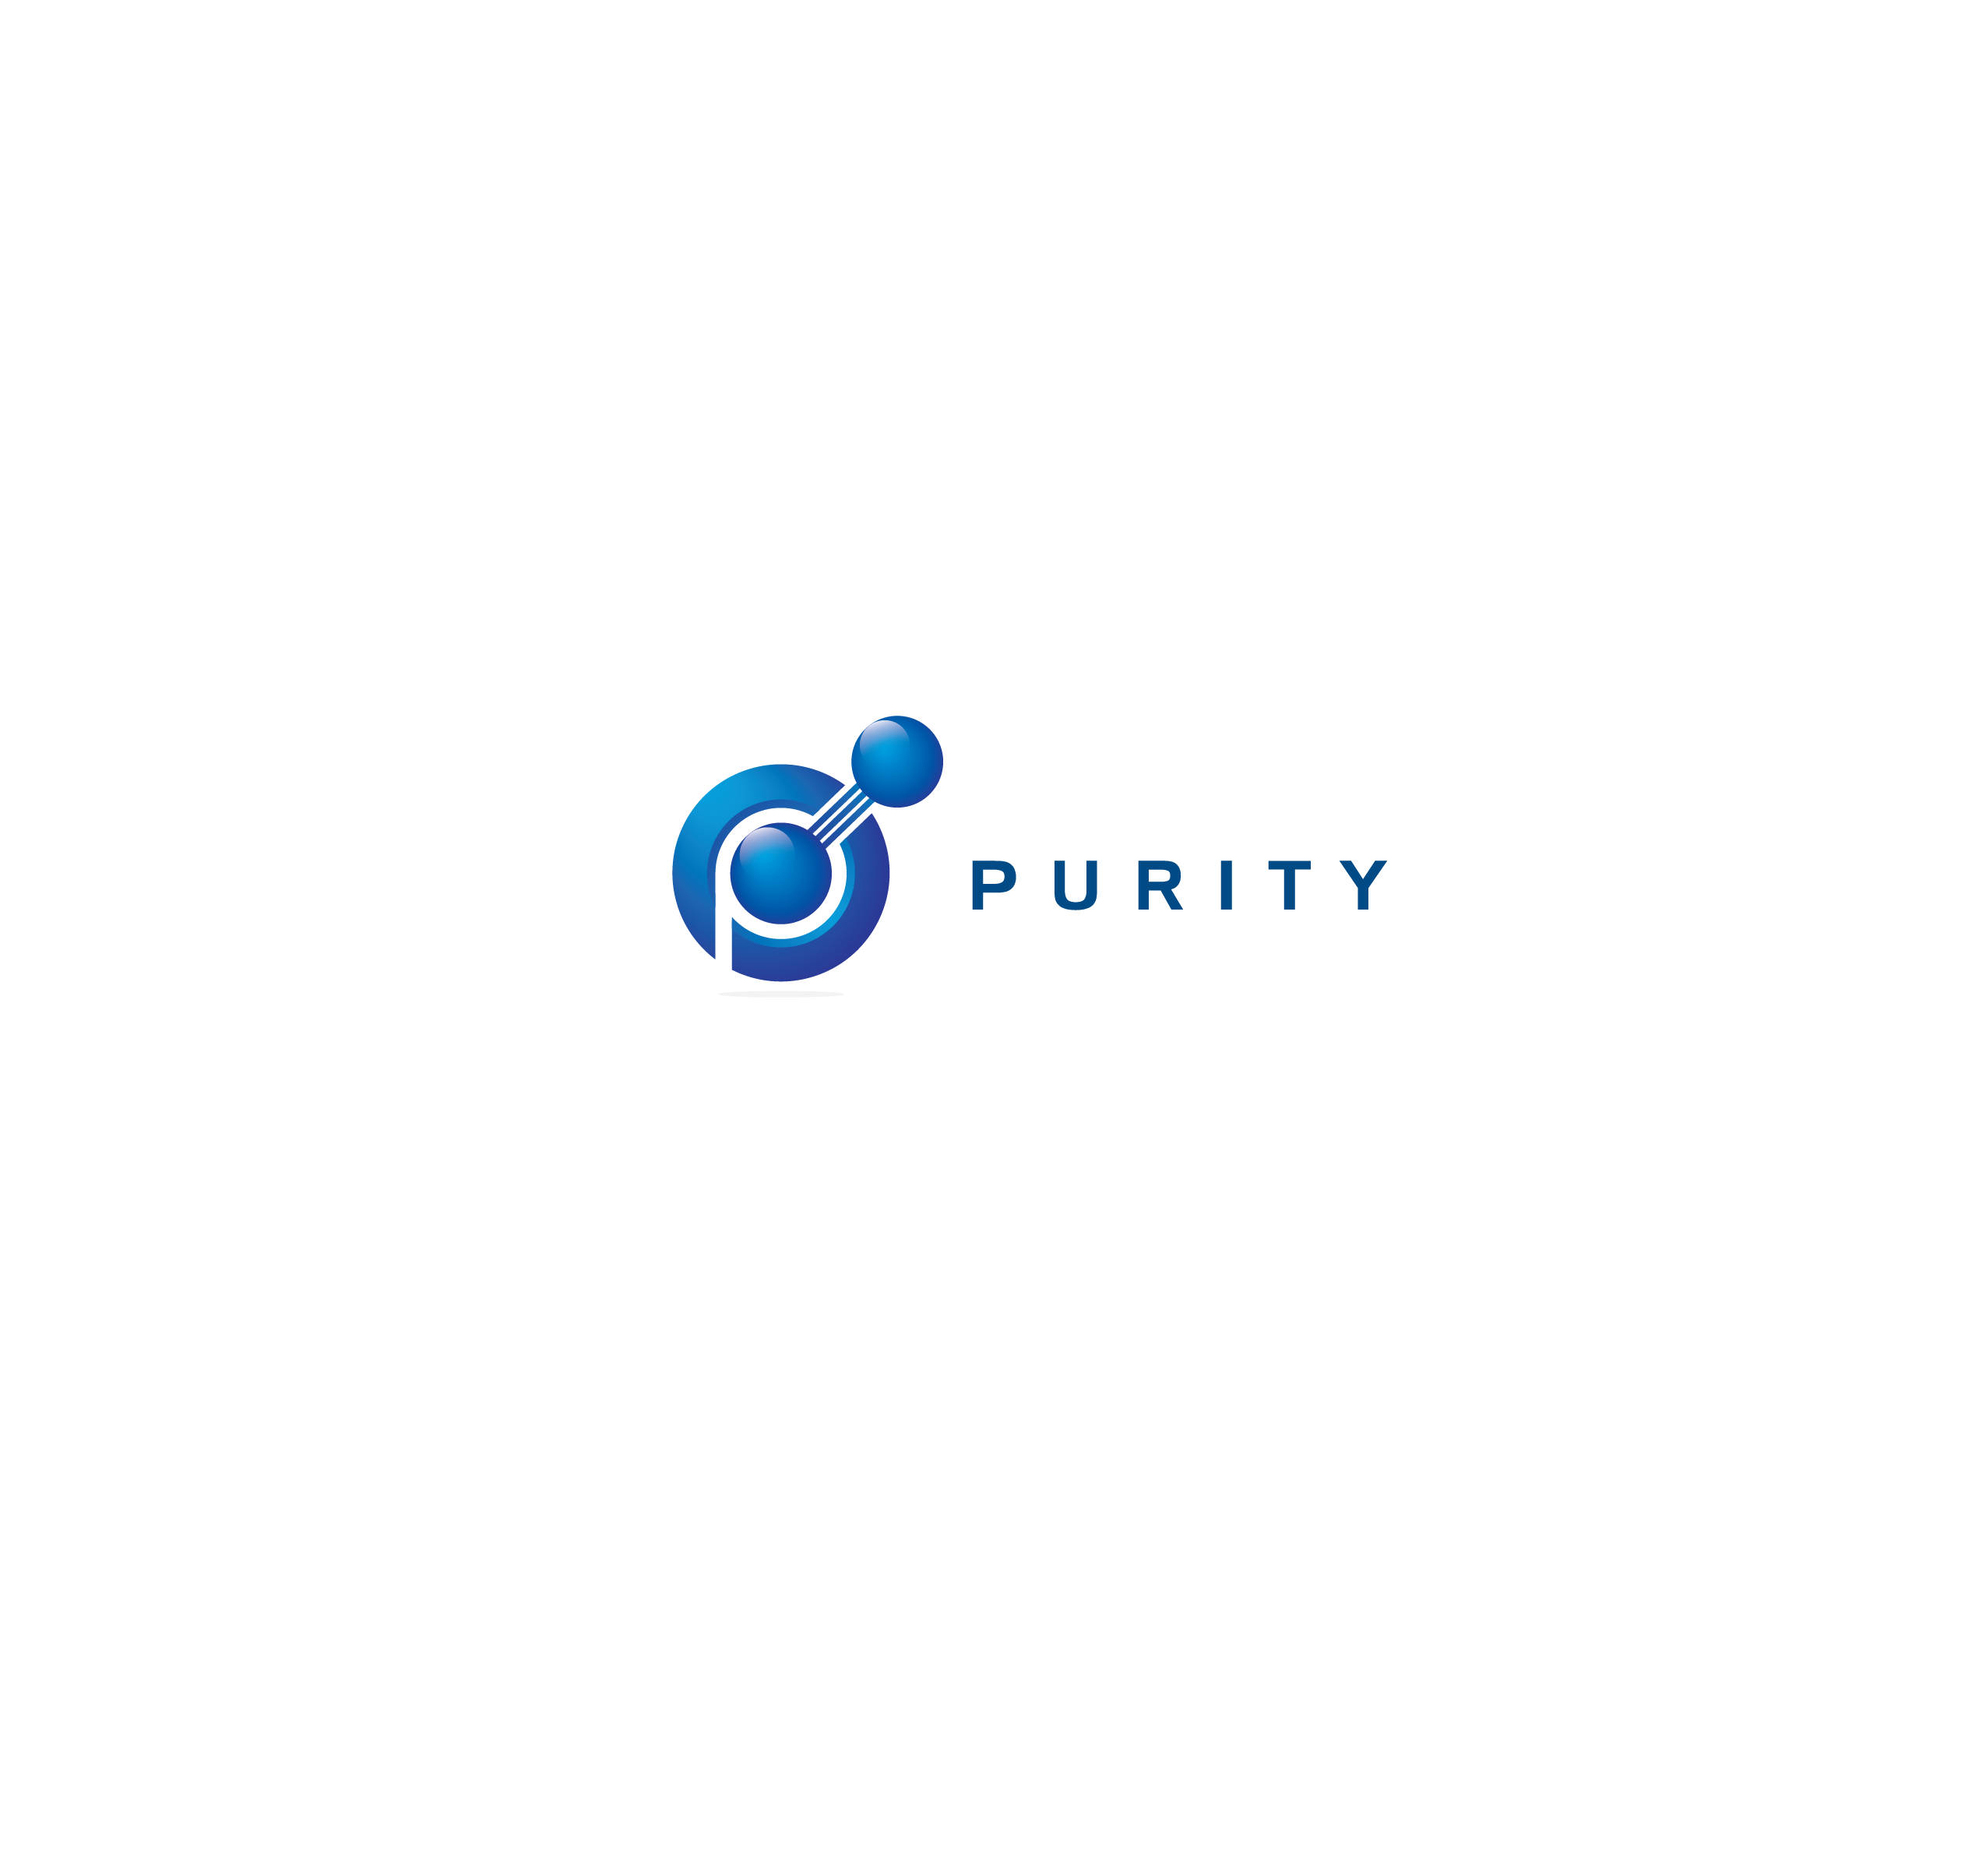 We need a kickass logo for our engineering startup 'Purity'